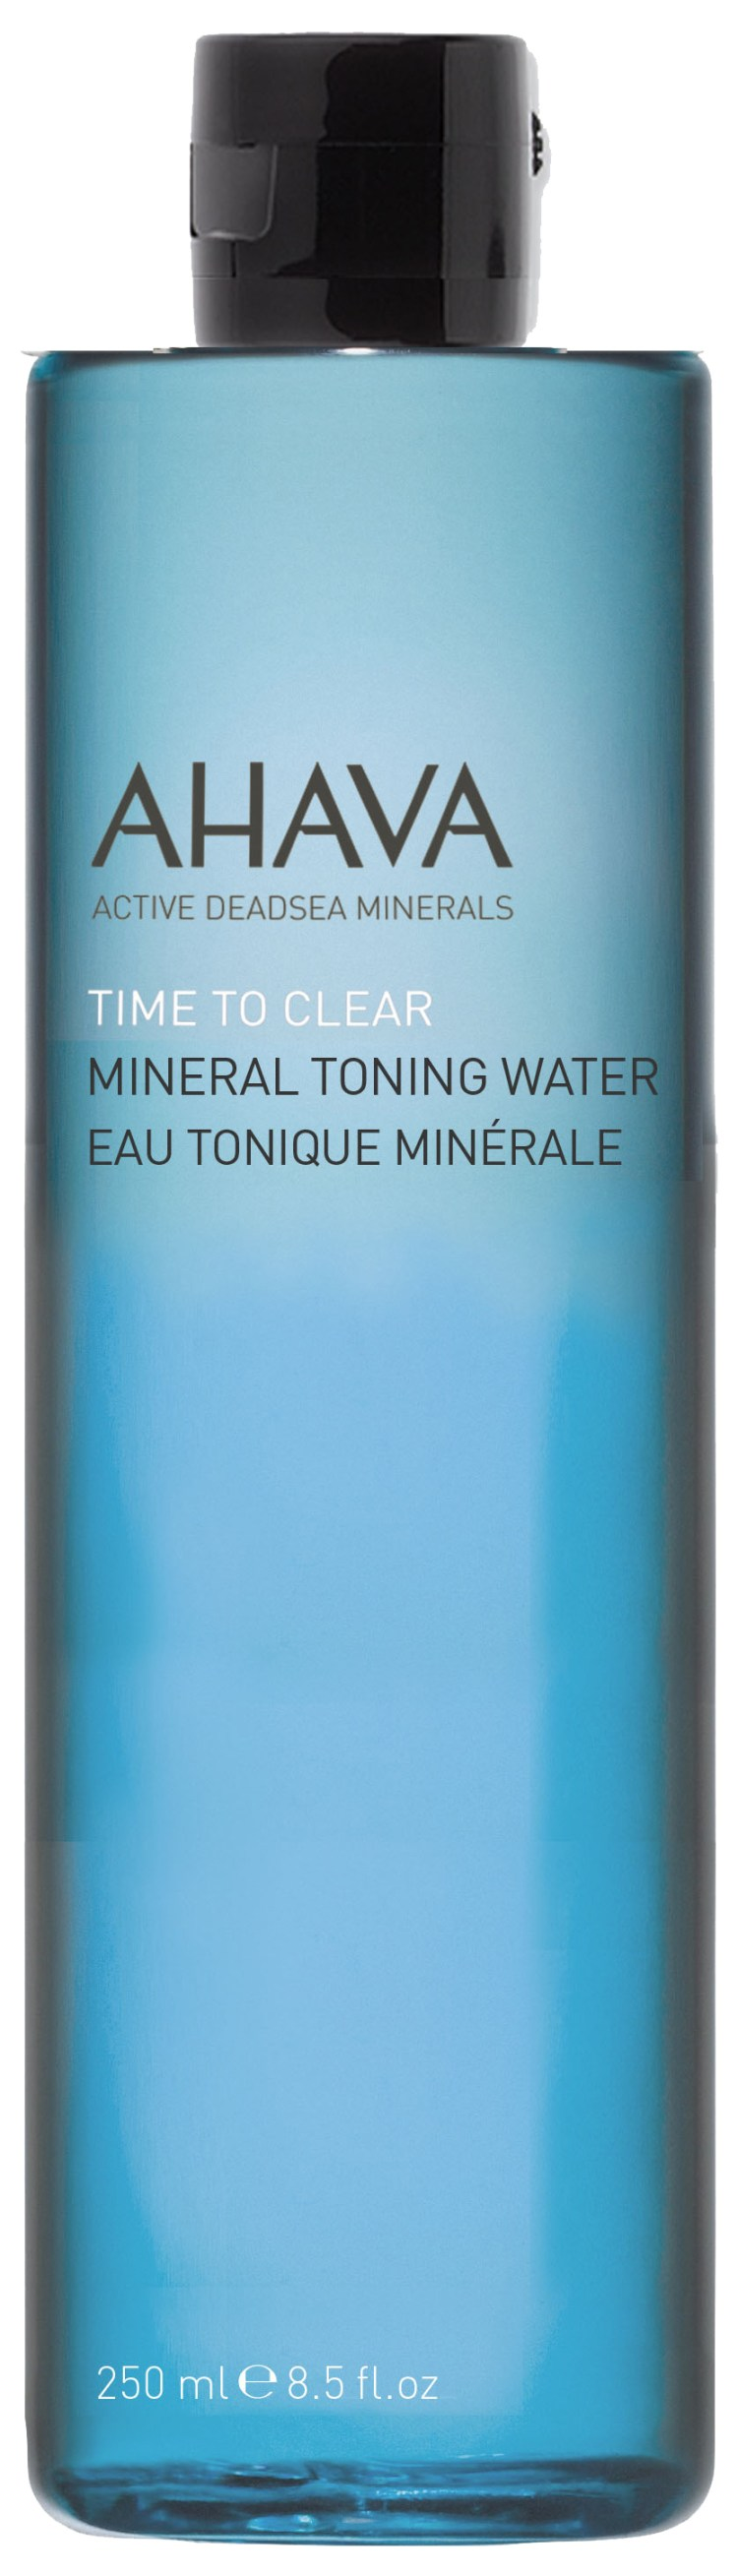 Mineral tonic water